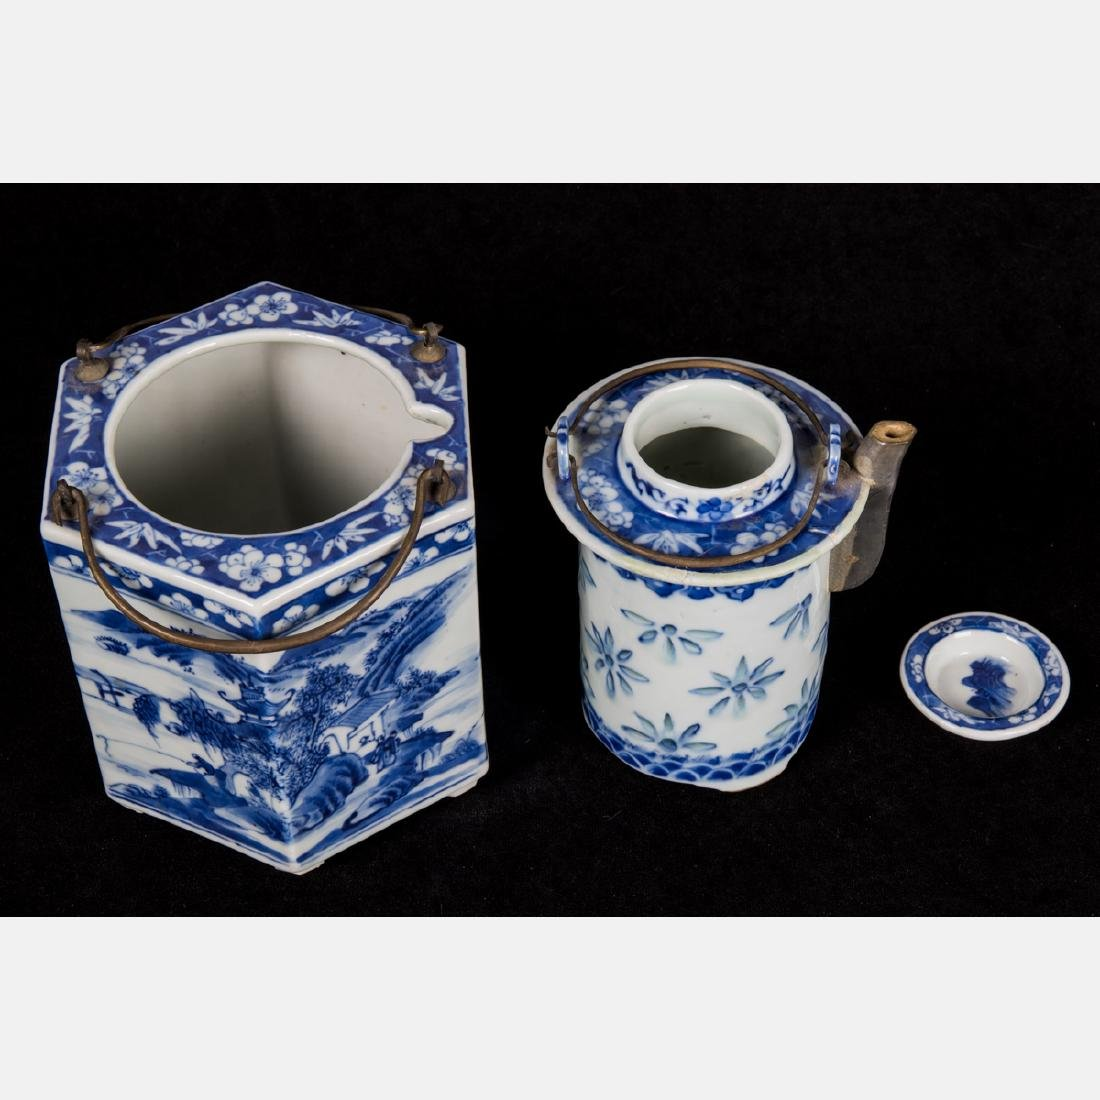 A Chinese Blue and White Porcelain Insulated, Hexagonal - 2